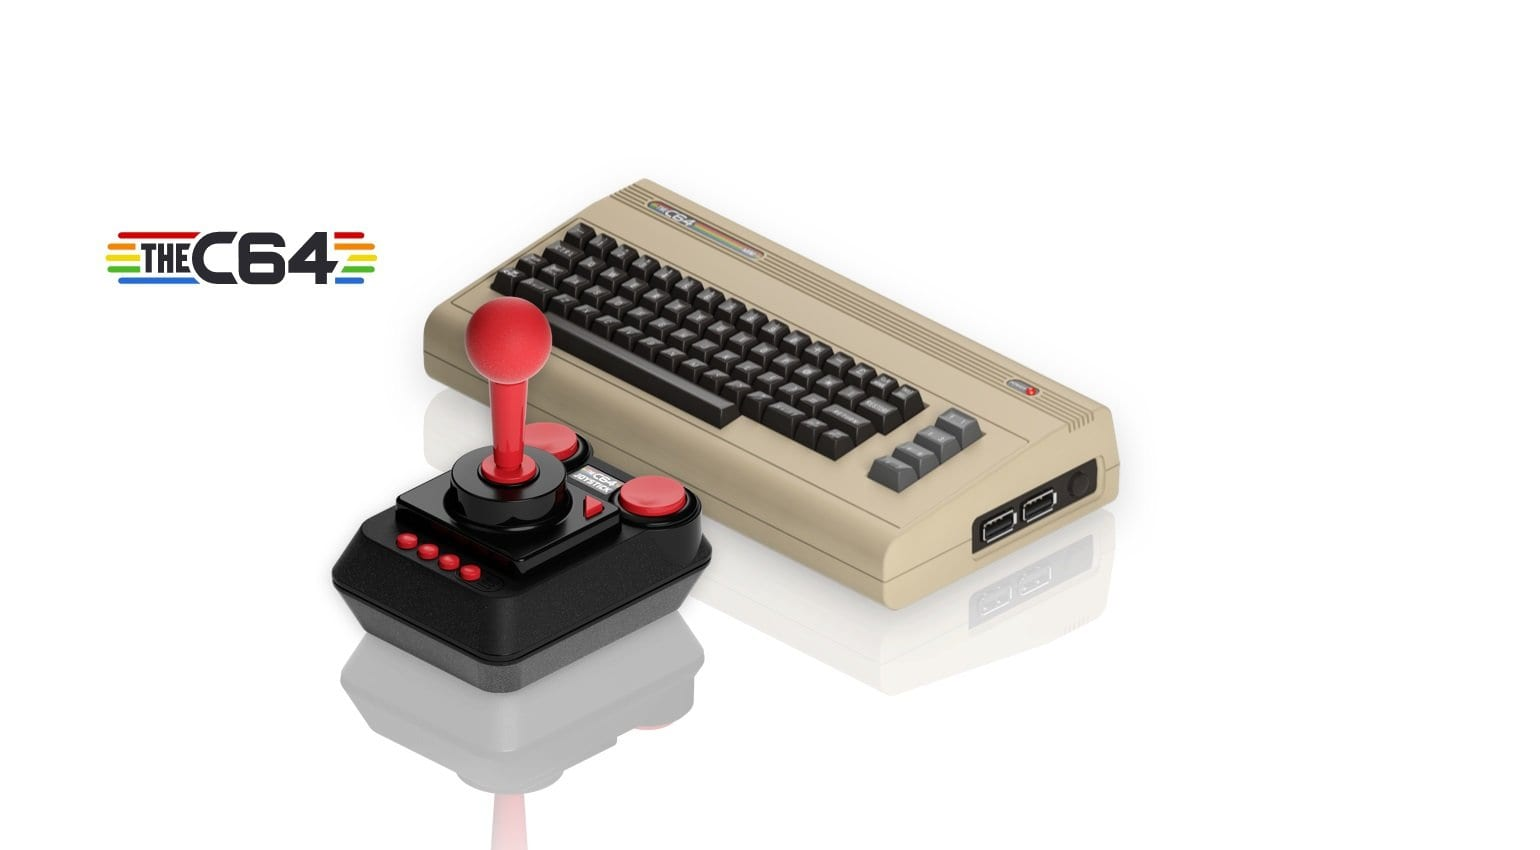 Chiptune fans! The Commodore 64 is back from the dead